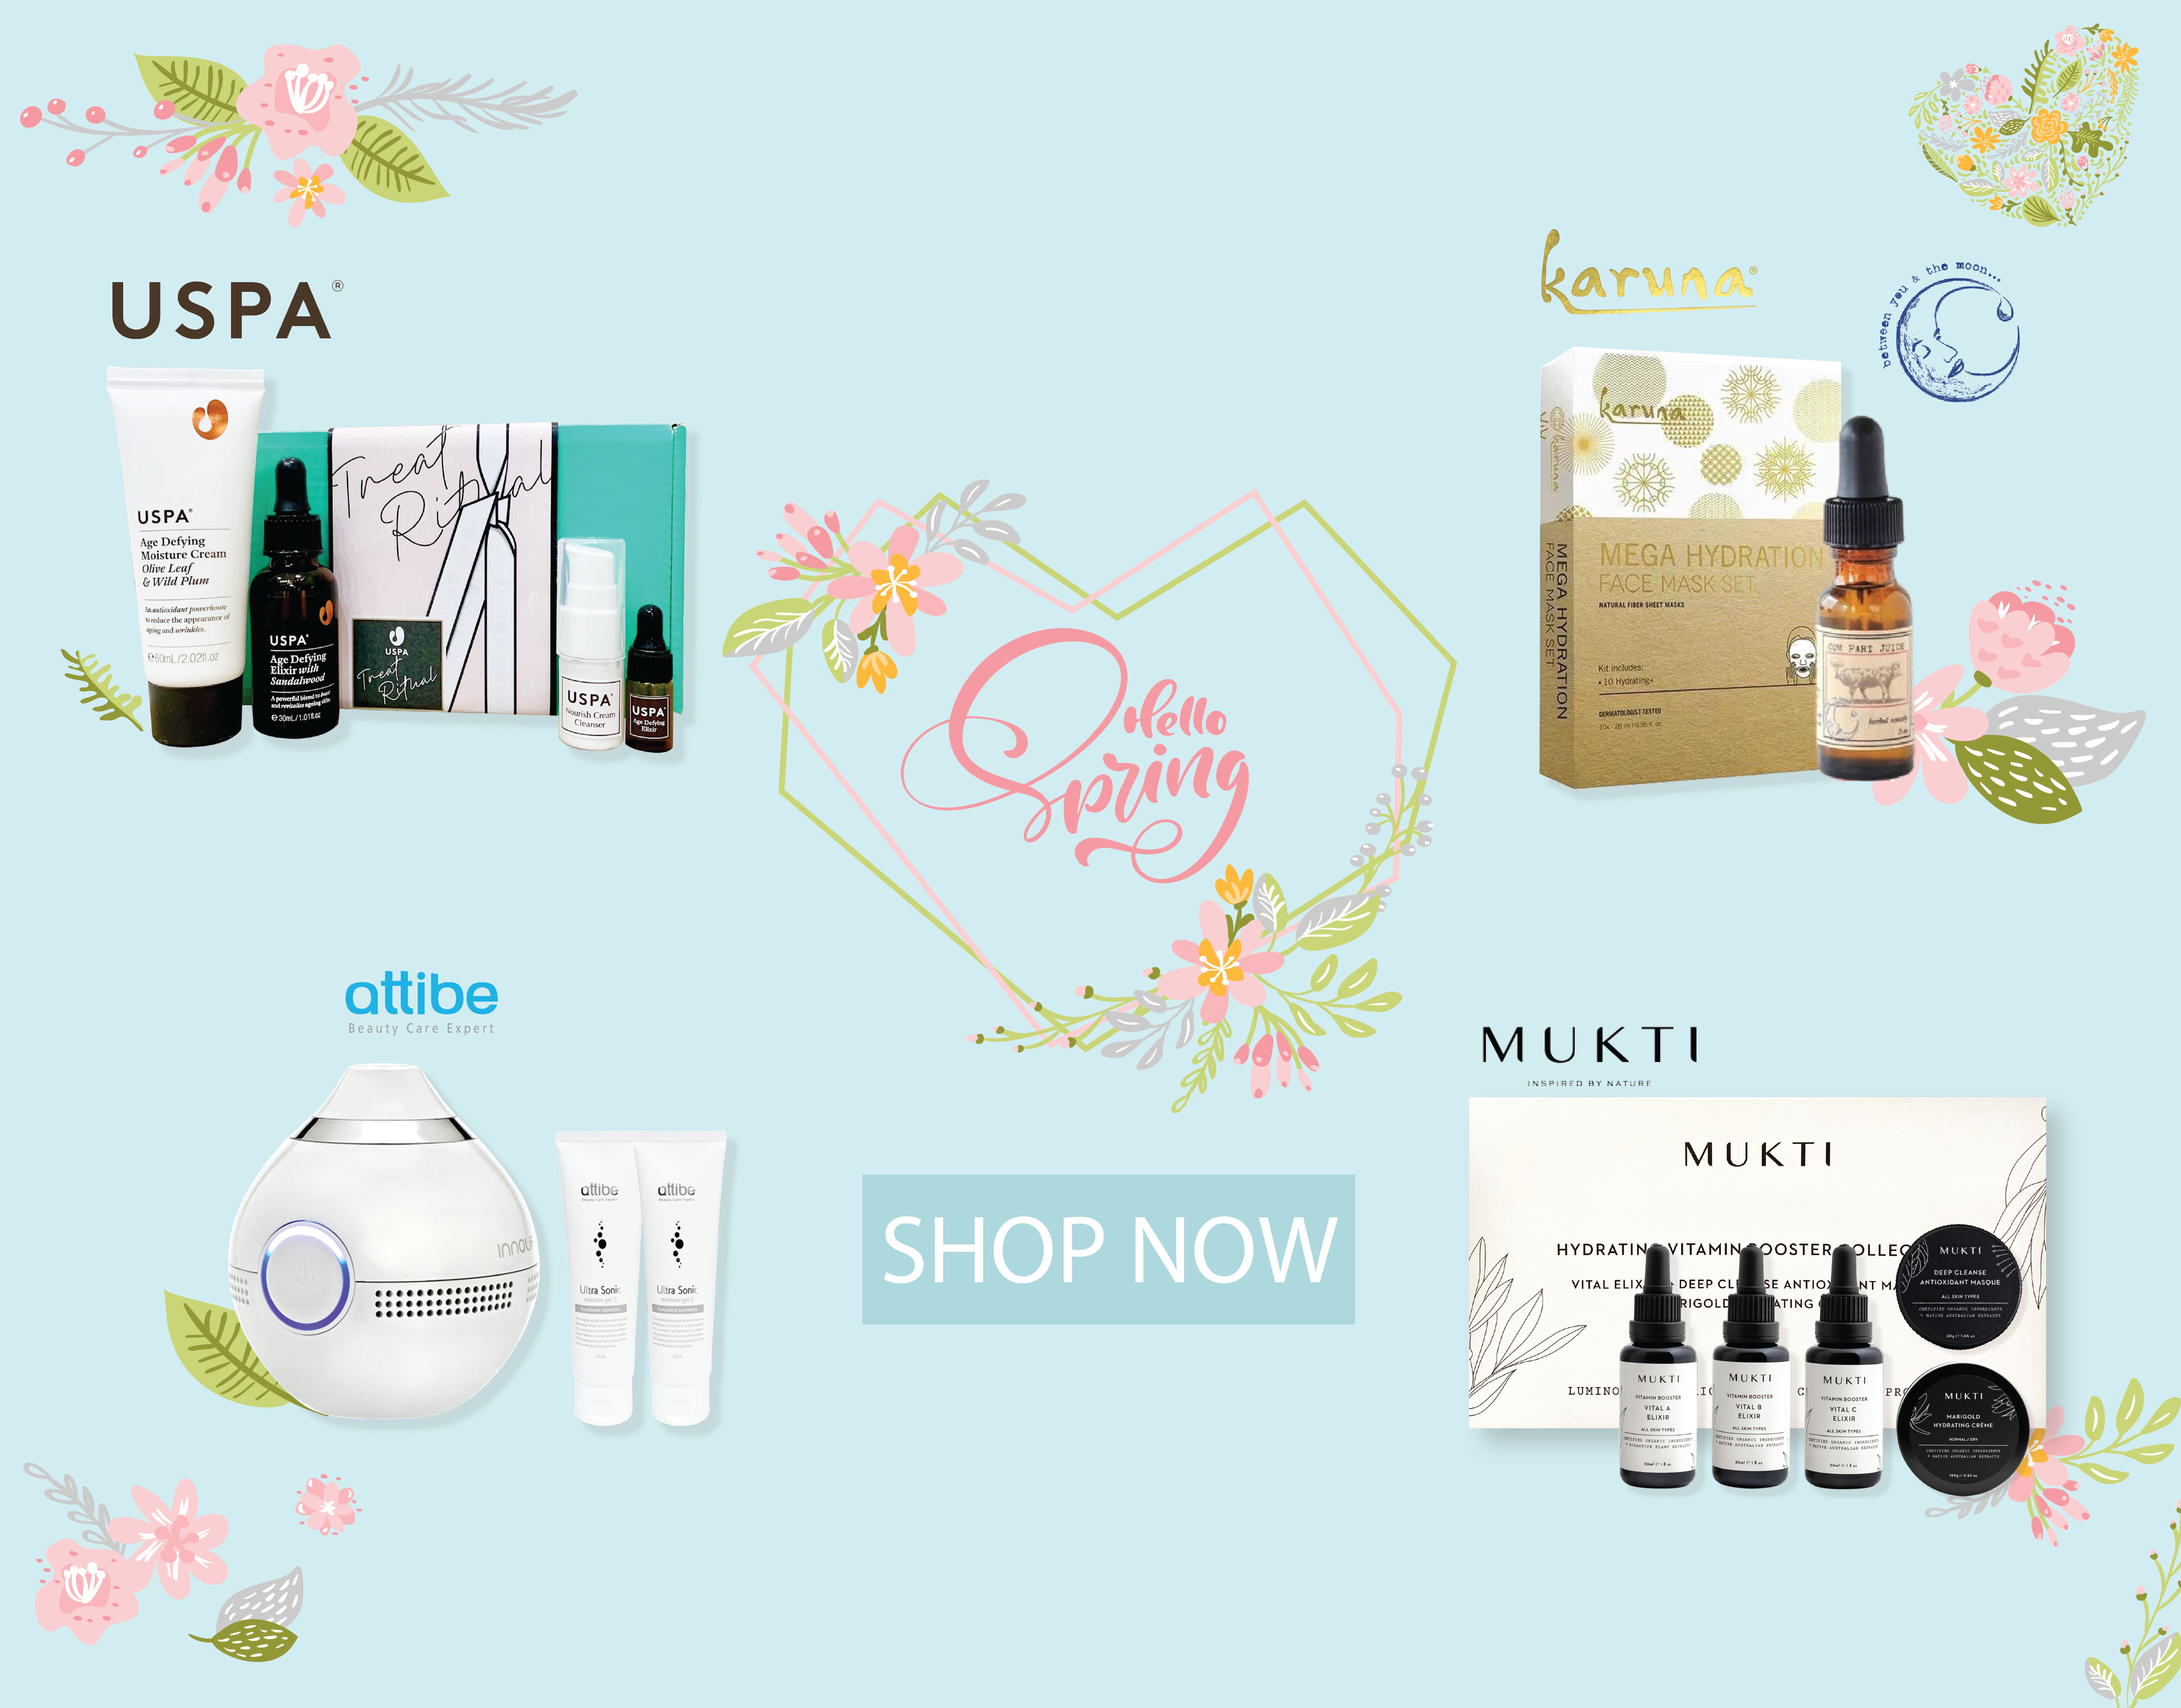 OhMart Beauty, Fashion, Lifestyle, Organic Skincare, Natural Makeup - Curated by OhMart 2